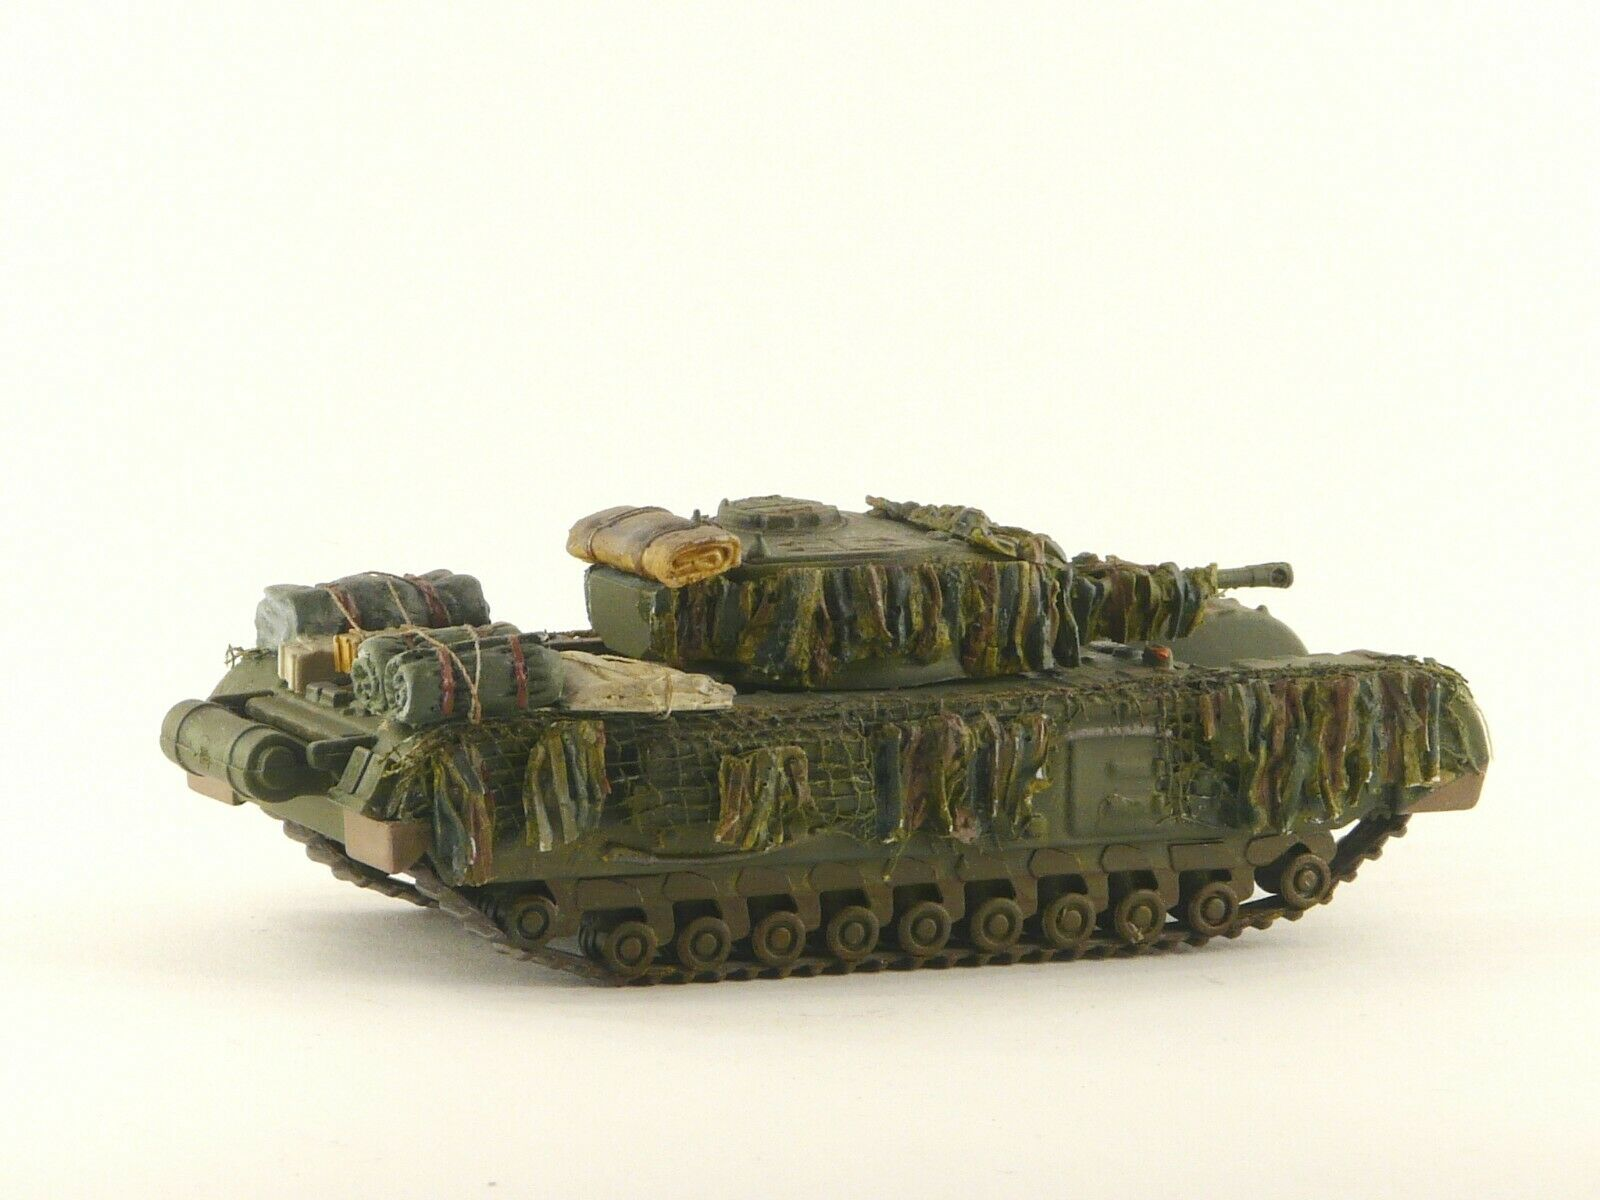 Redog 1:72 Churchill Tank Flexible Hessian Camouflage Scale Modelling Stowage Kit - redoguk